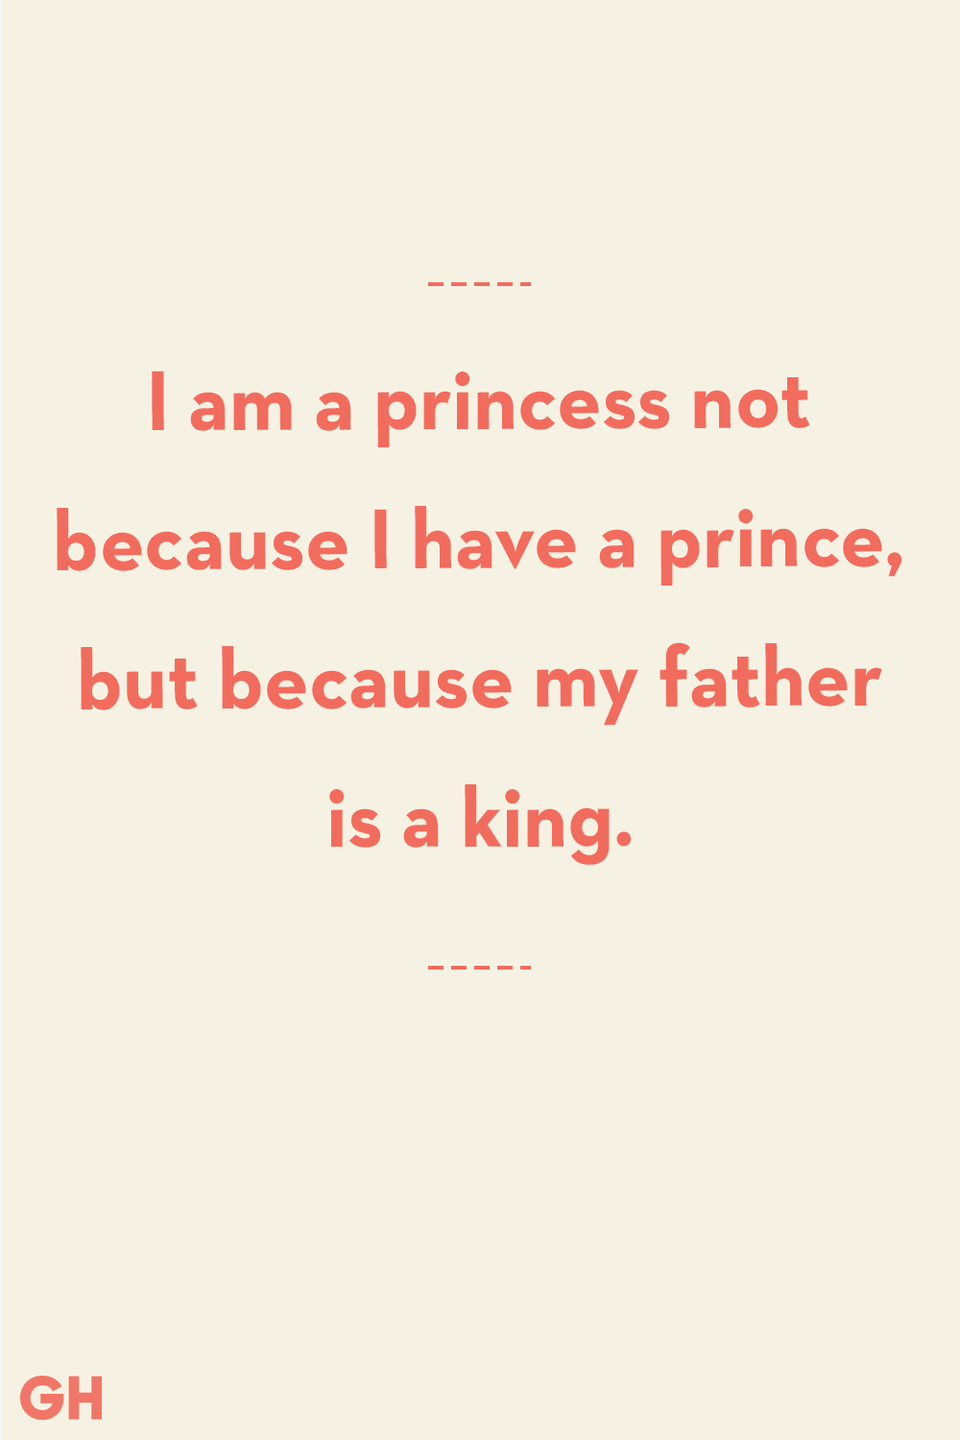 <p>I am a princess not because I have a prince, but because my father is a king.</p>